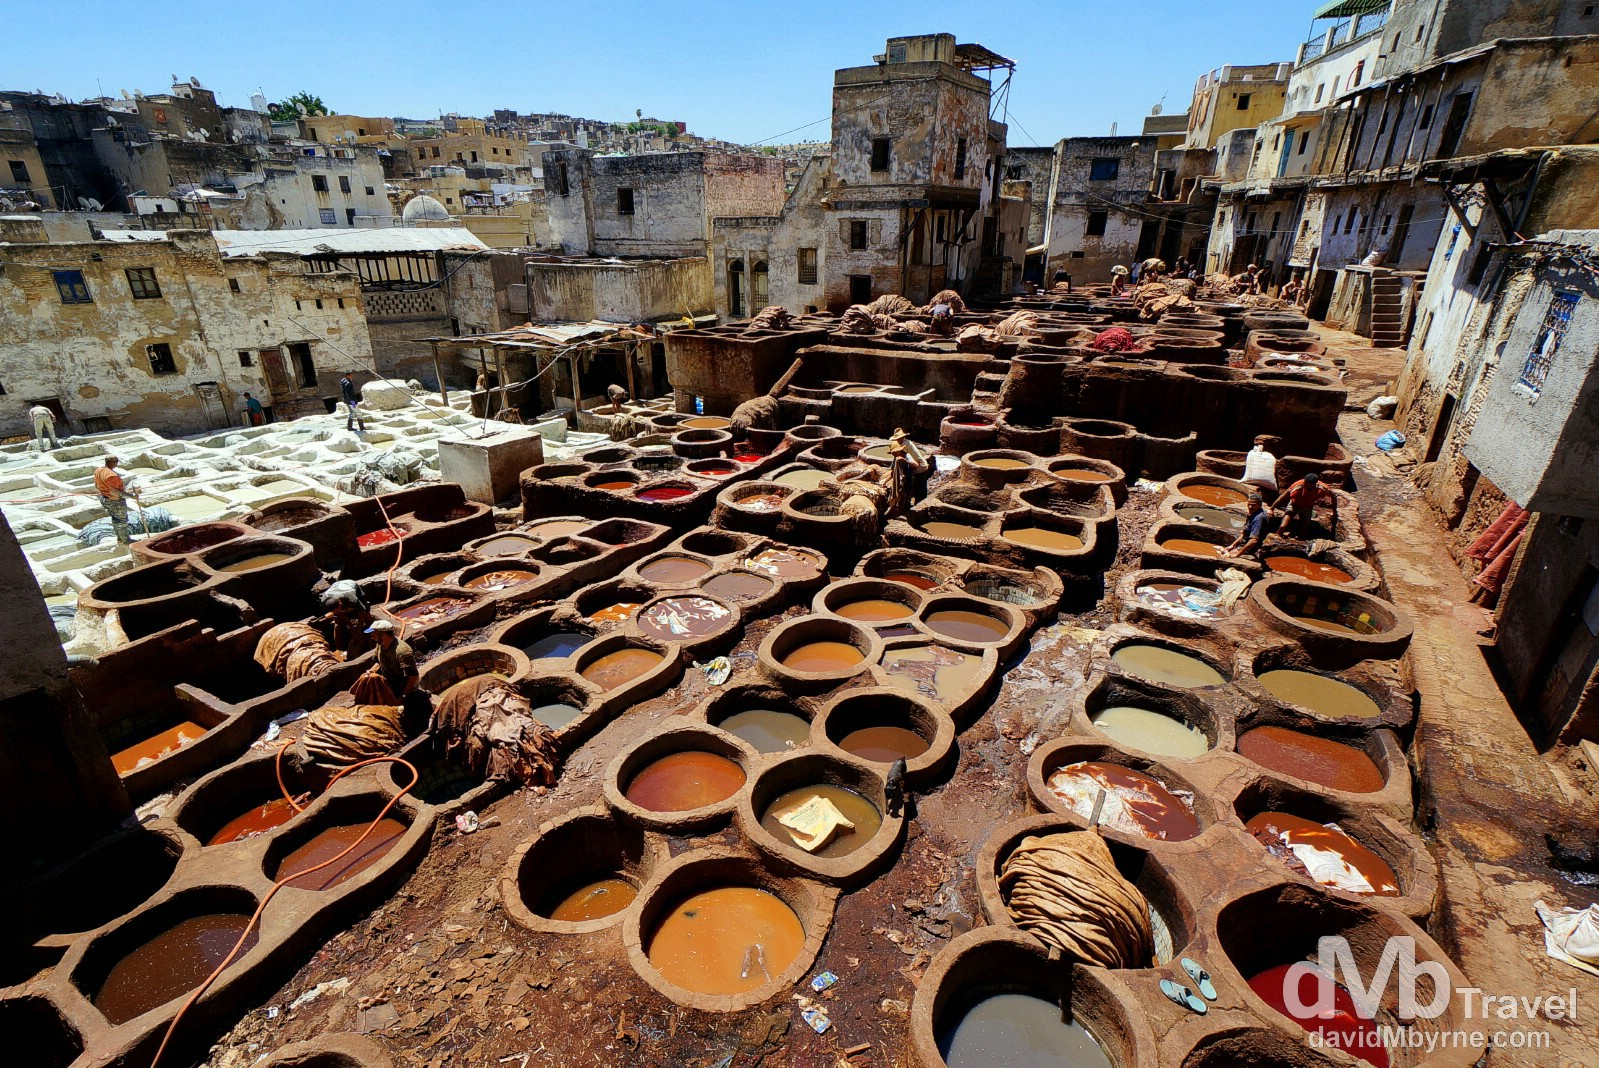 An overview of the Tanneries Chouwara, Fes el Bali, Fes, Morocco. May 29th, 2014.